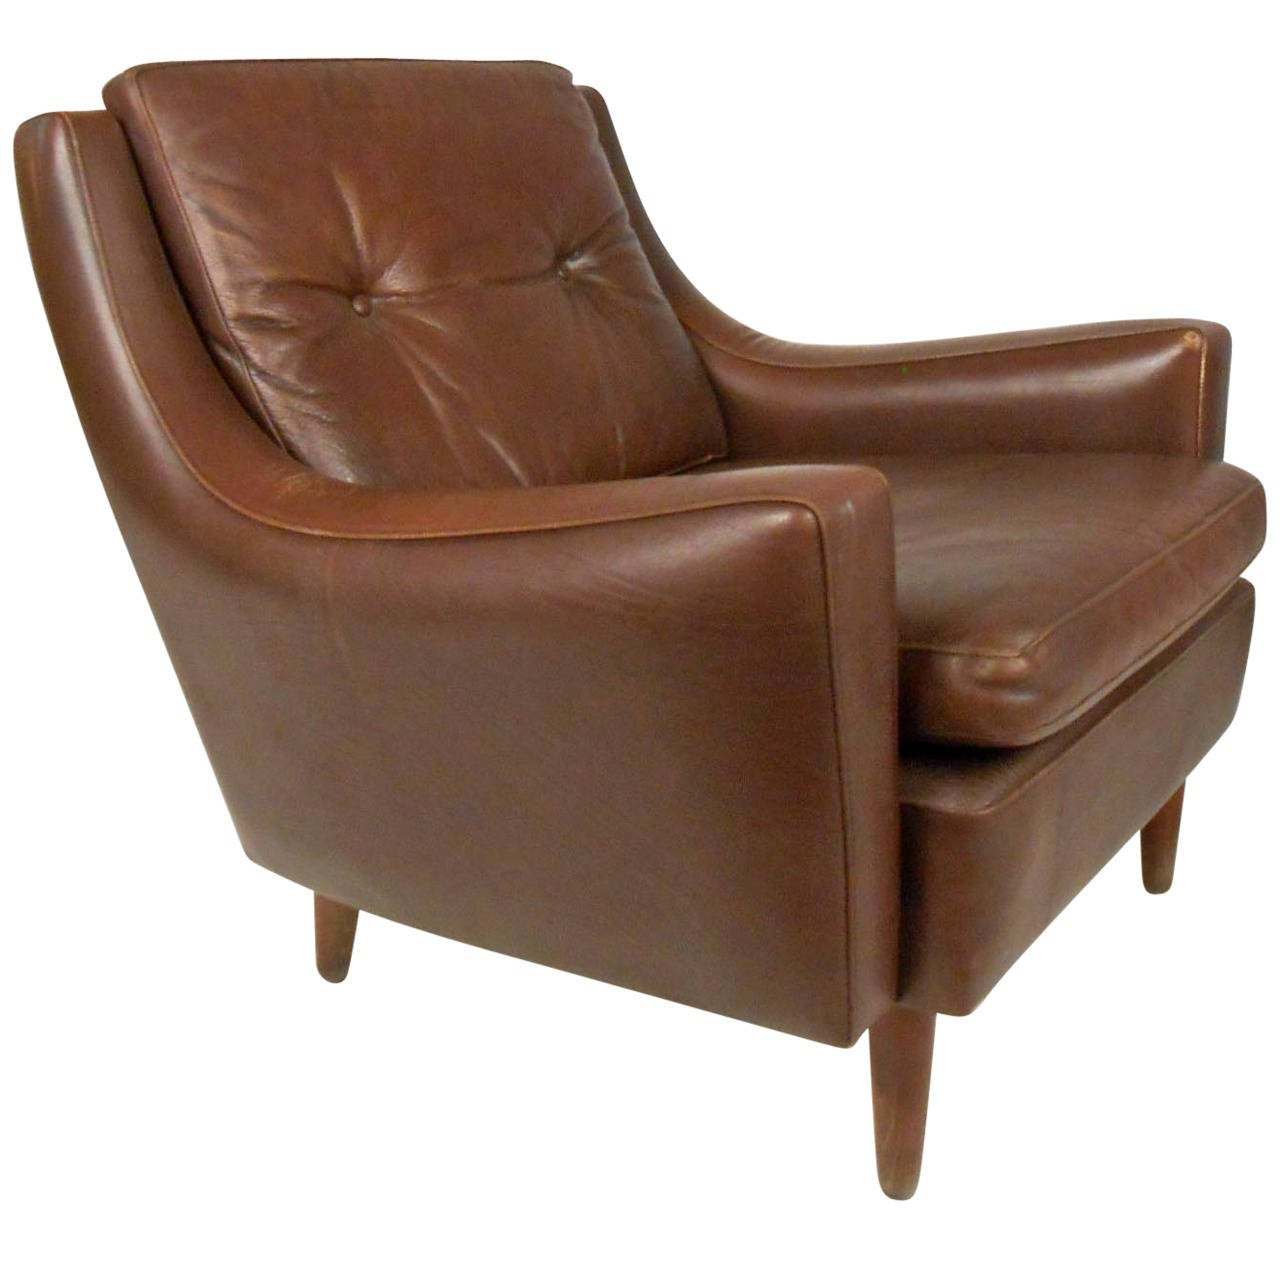 Mid century modern tufted brown leather club chair at 1stdibs for Modern leather club chair